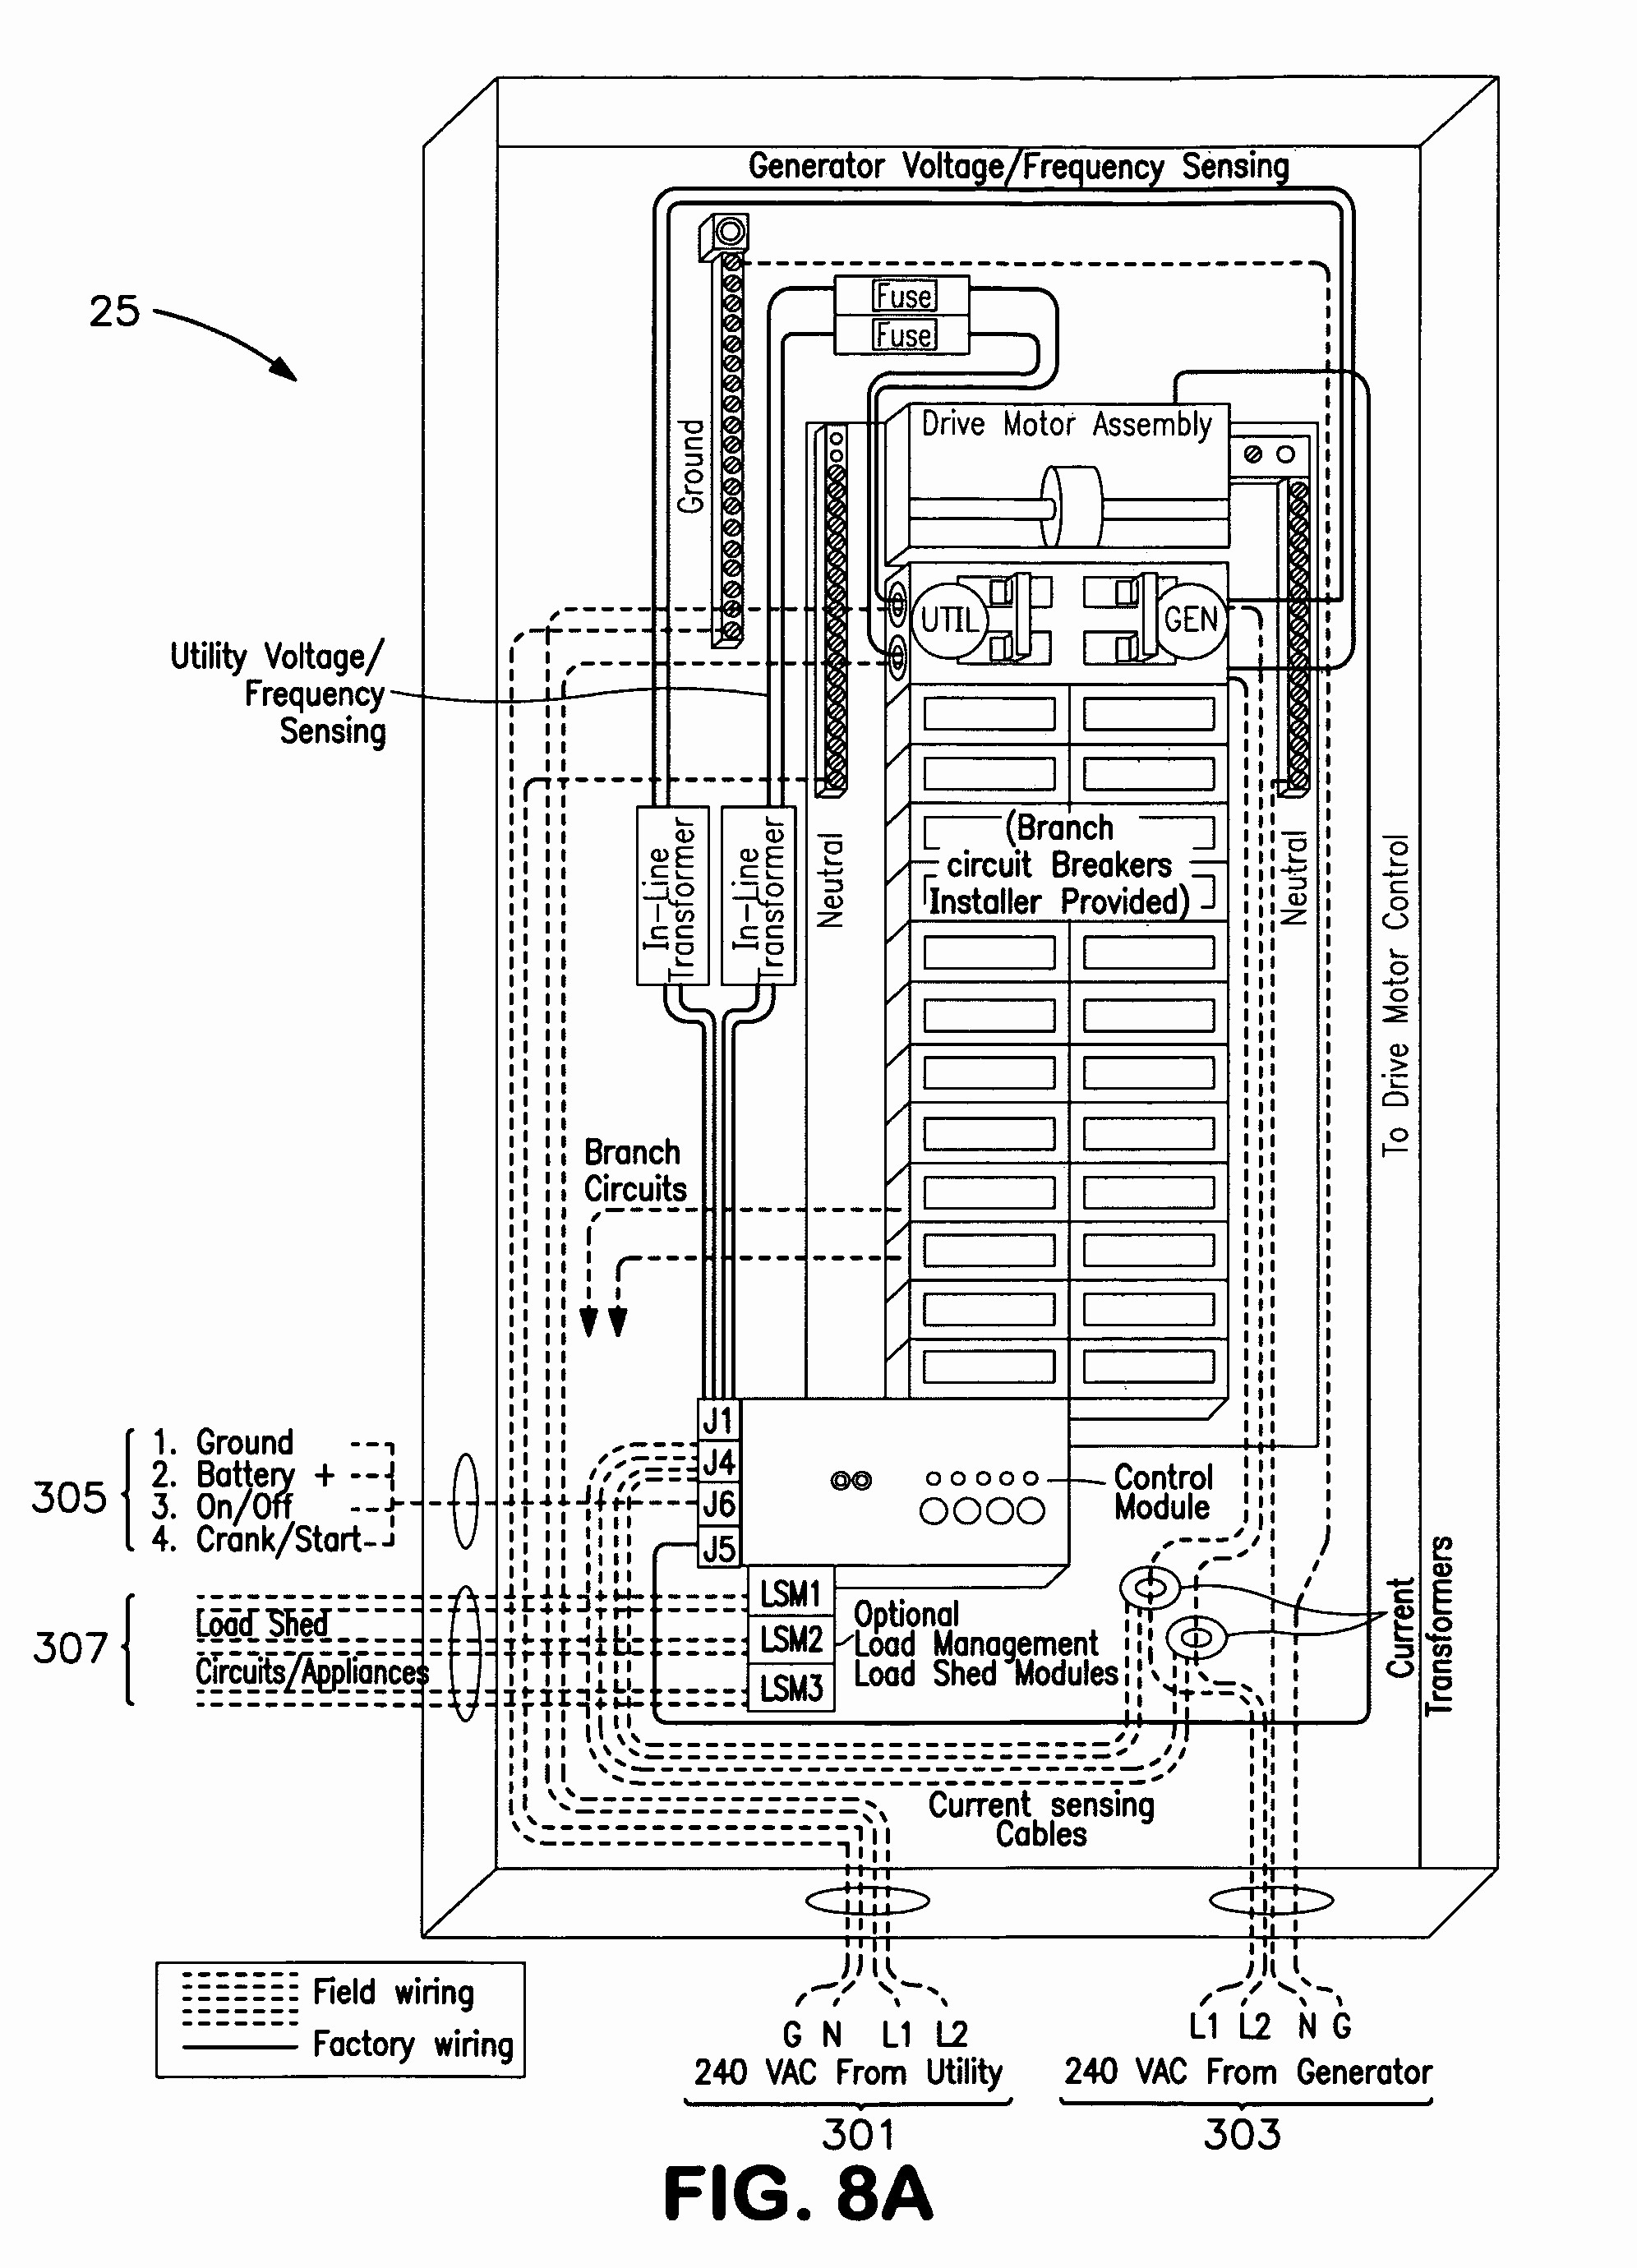 Generac 100 Amp Load Center Wiring Diagram 30 200 On Breaker